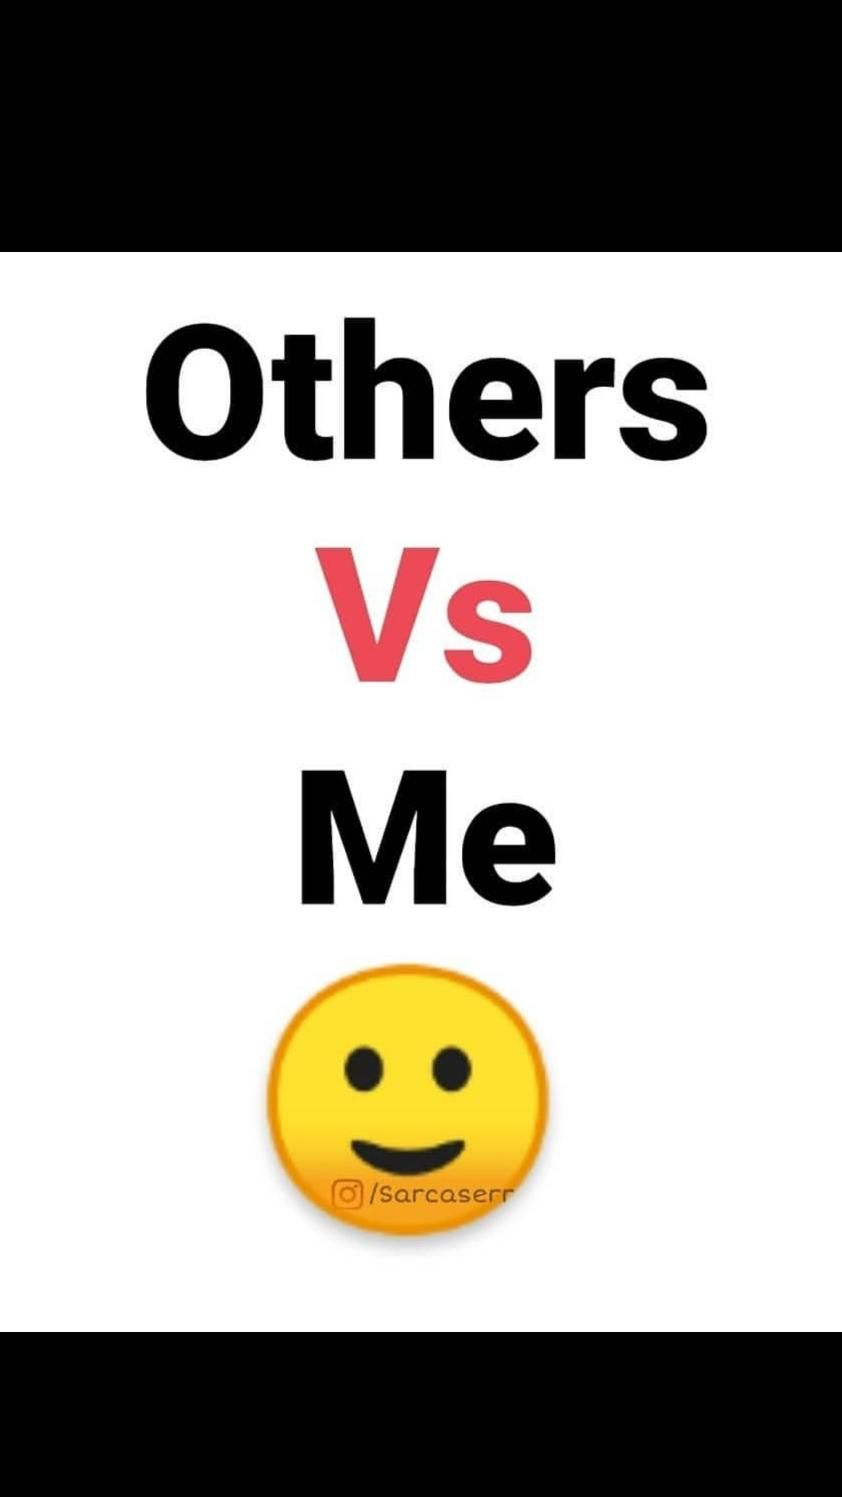 Others Vs Me